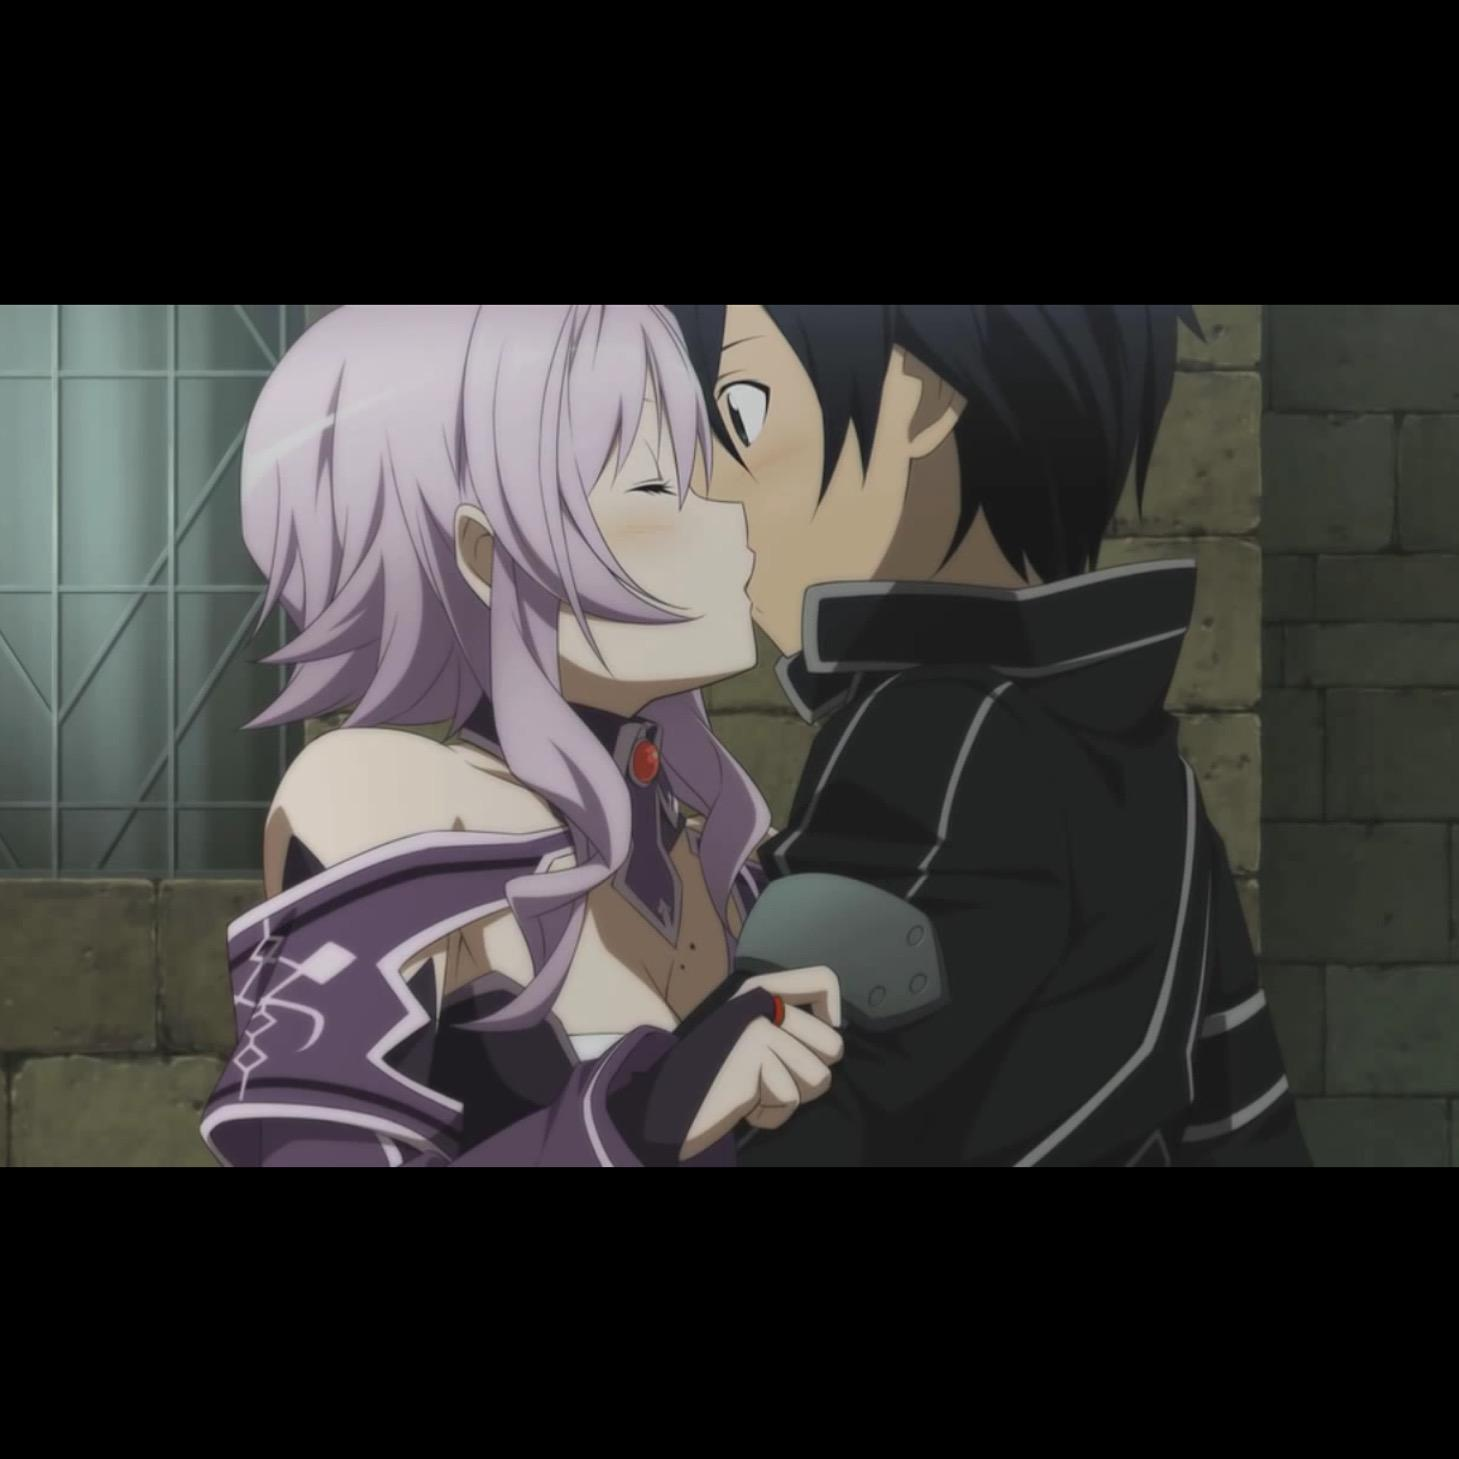 If they put Strea in the anime SAO instead of just the game, would it create a lot more drama?